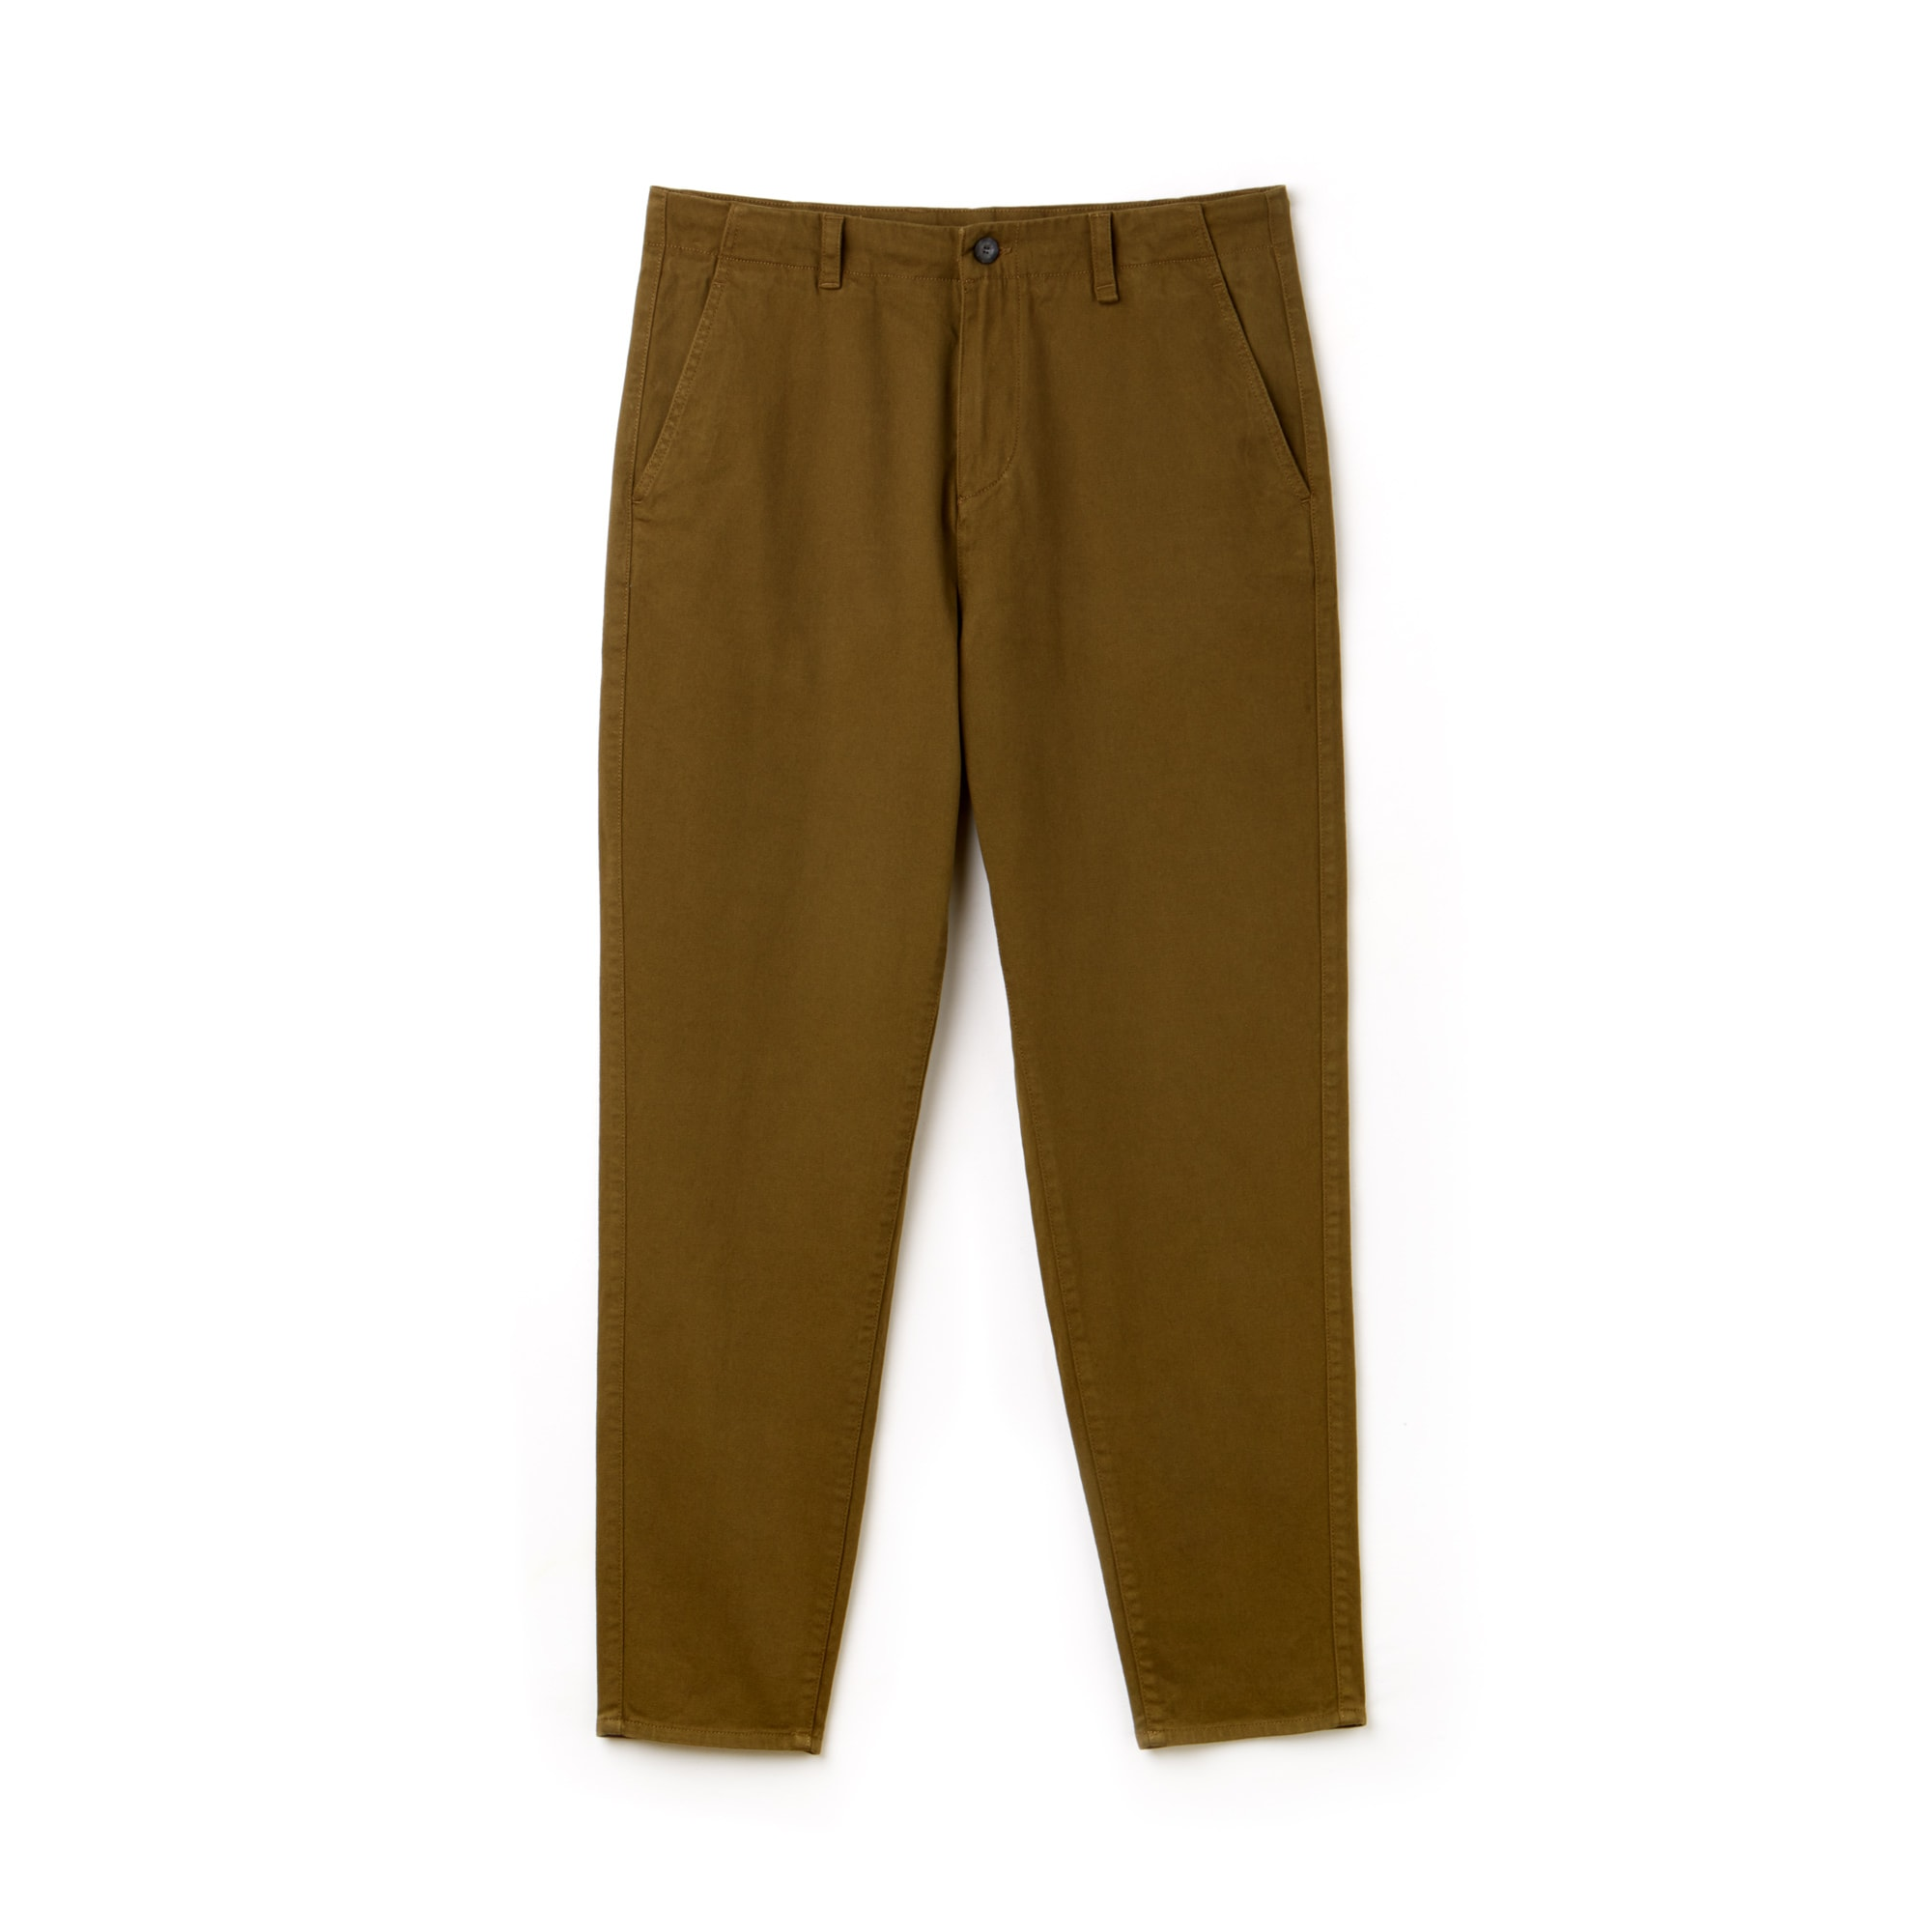 Men's Boxy Fit Texturized Stretch Cotton Twill Chino Pants